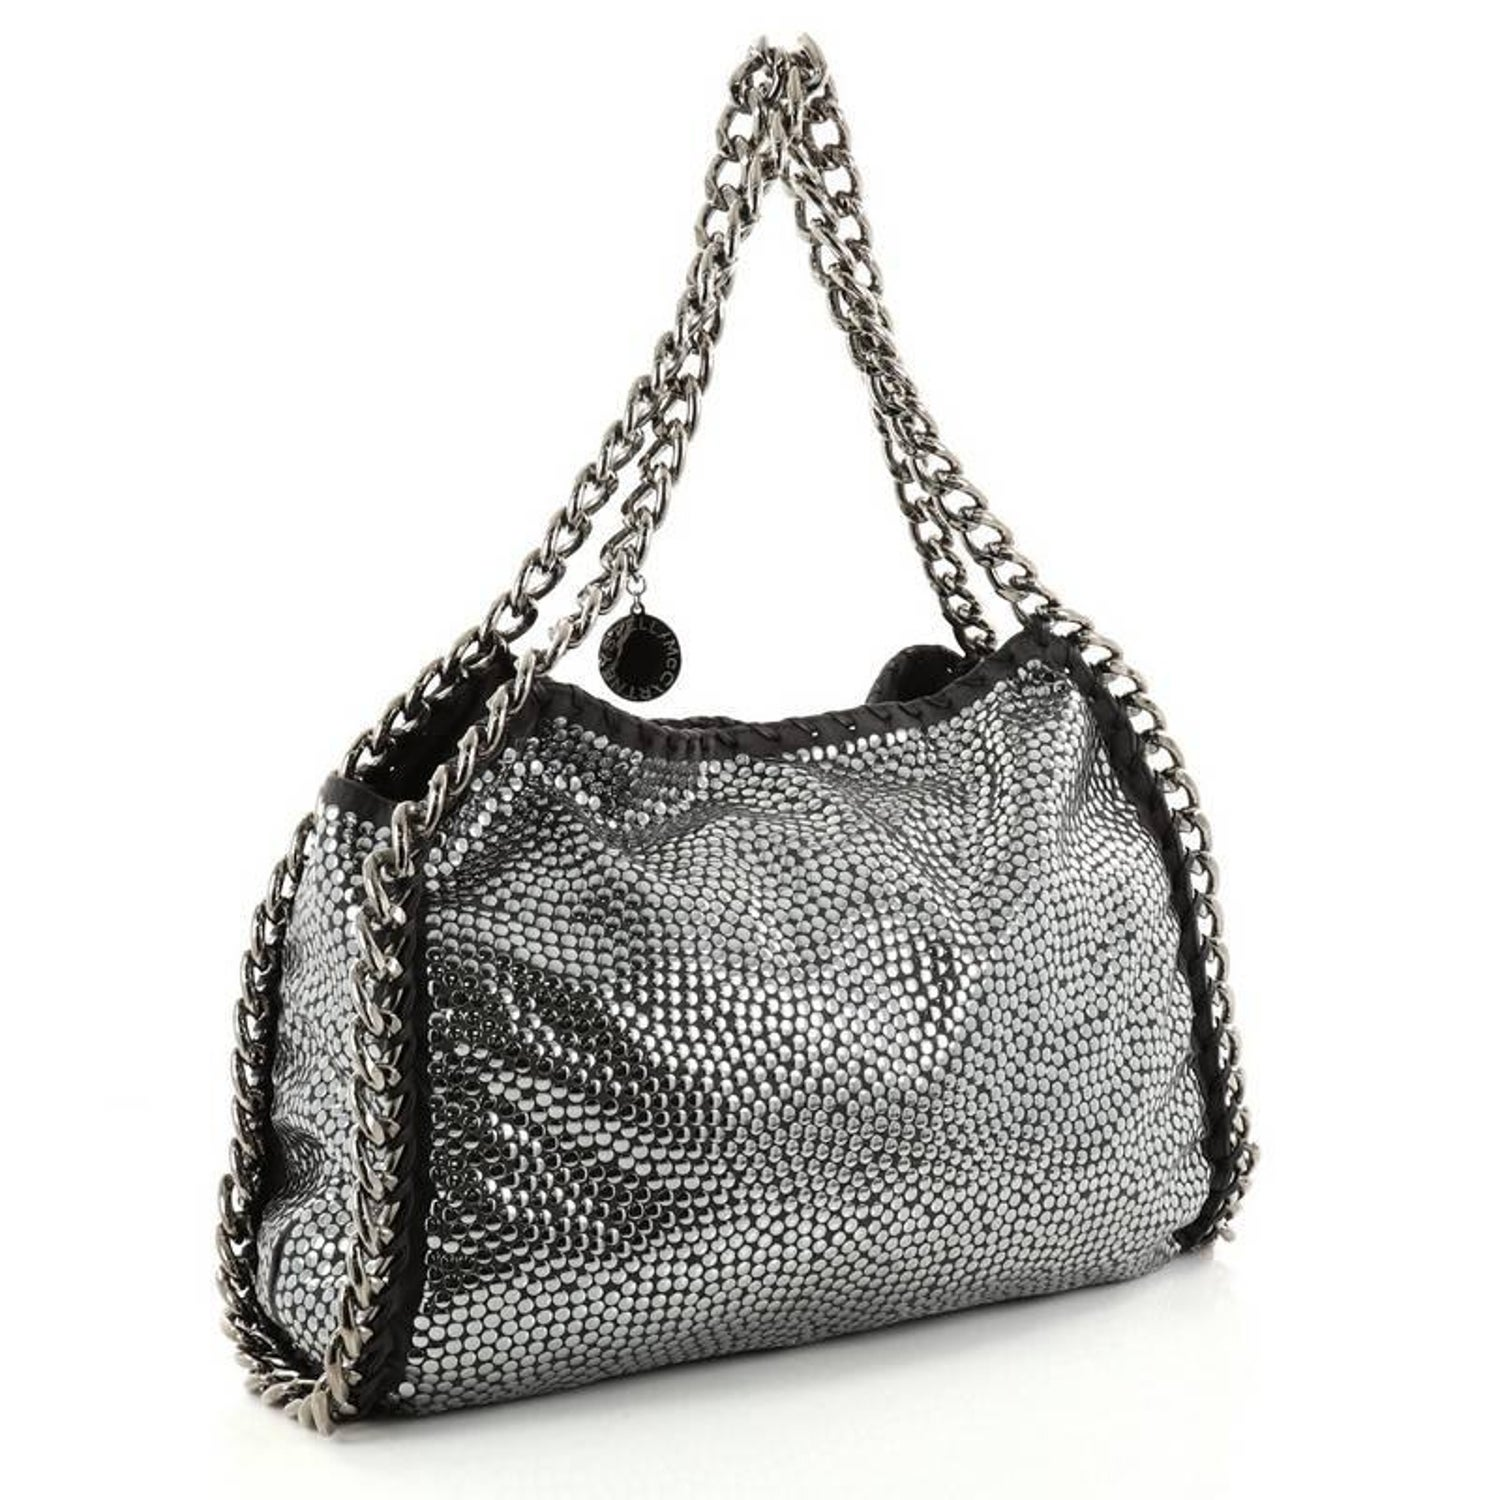 72bce3e903 Stella McCartney Falabella Tote Studded Faux Suede Large at 1stdibs